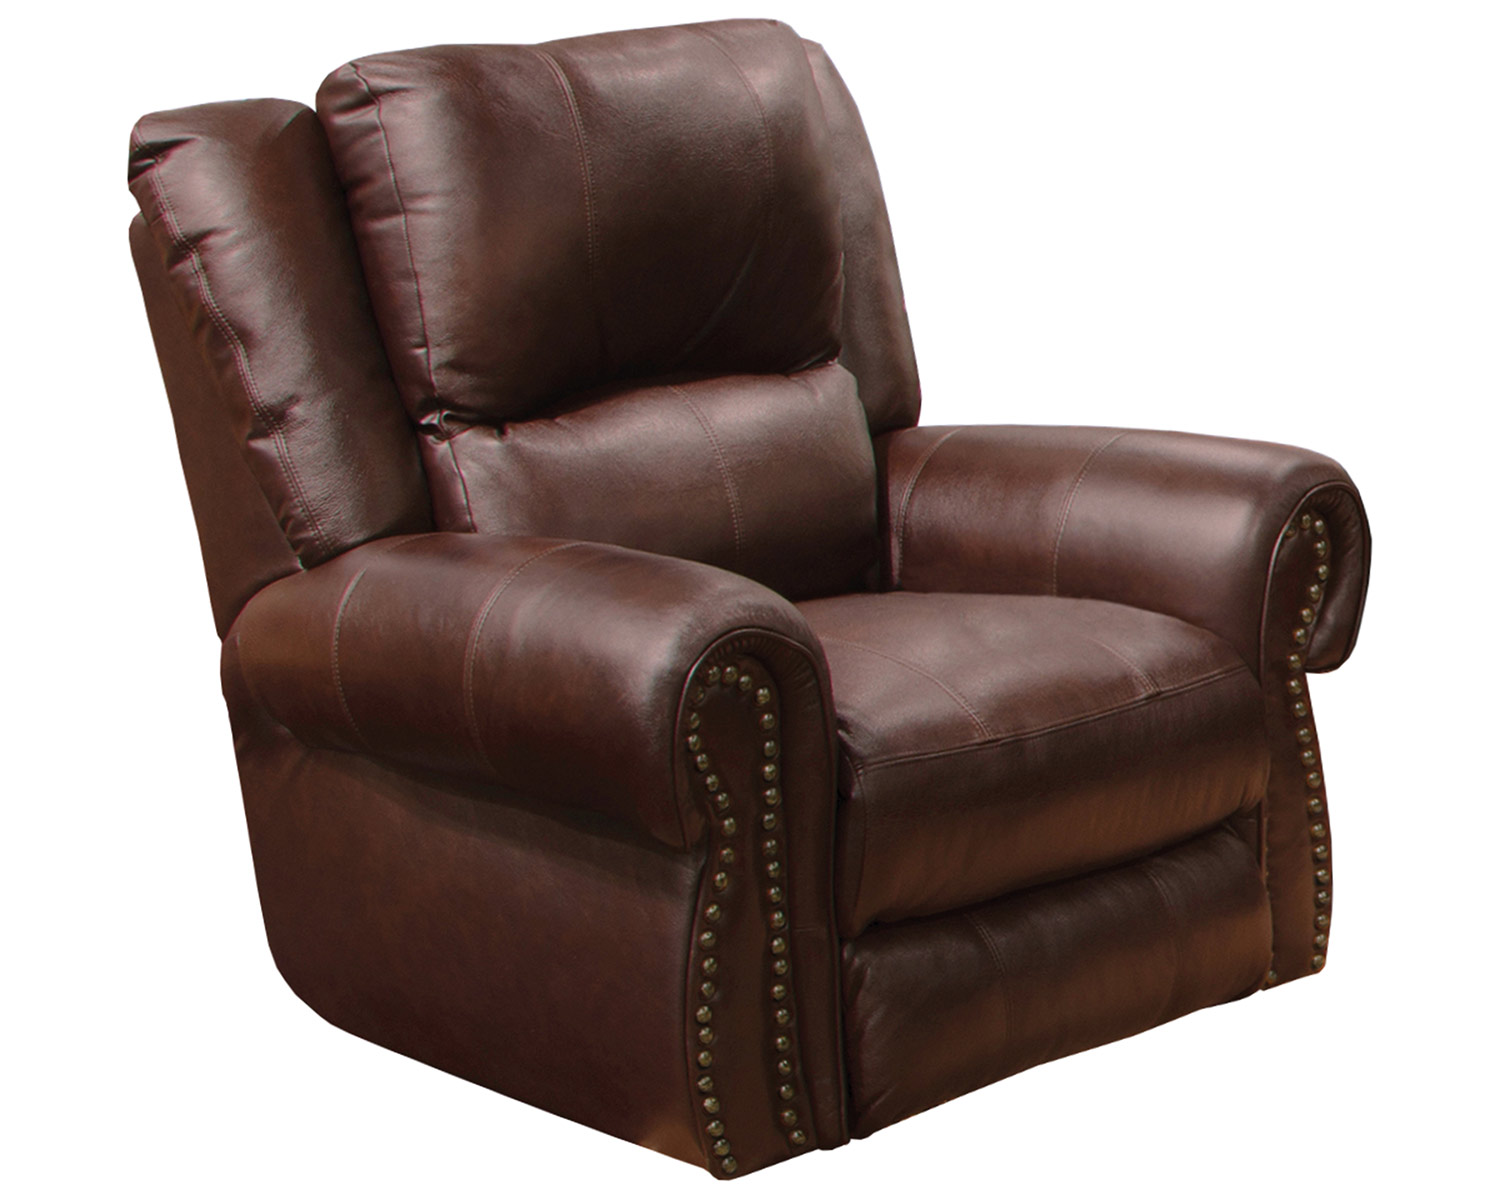 CatNapper Messina Leather Power Recliner Chair - Walnut